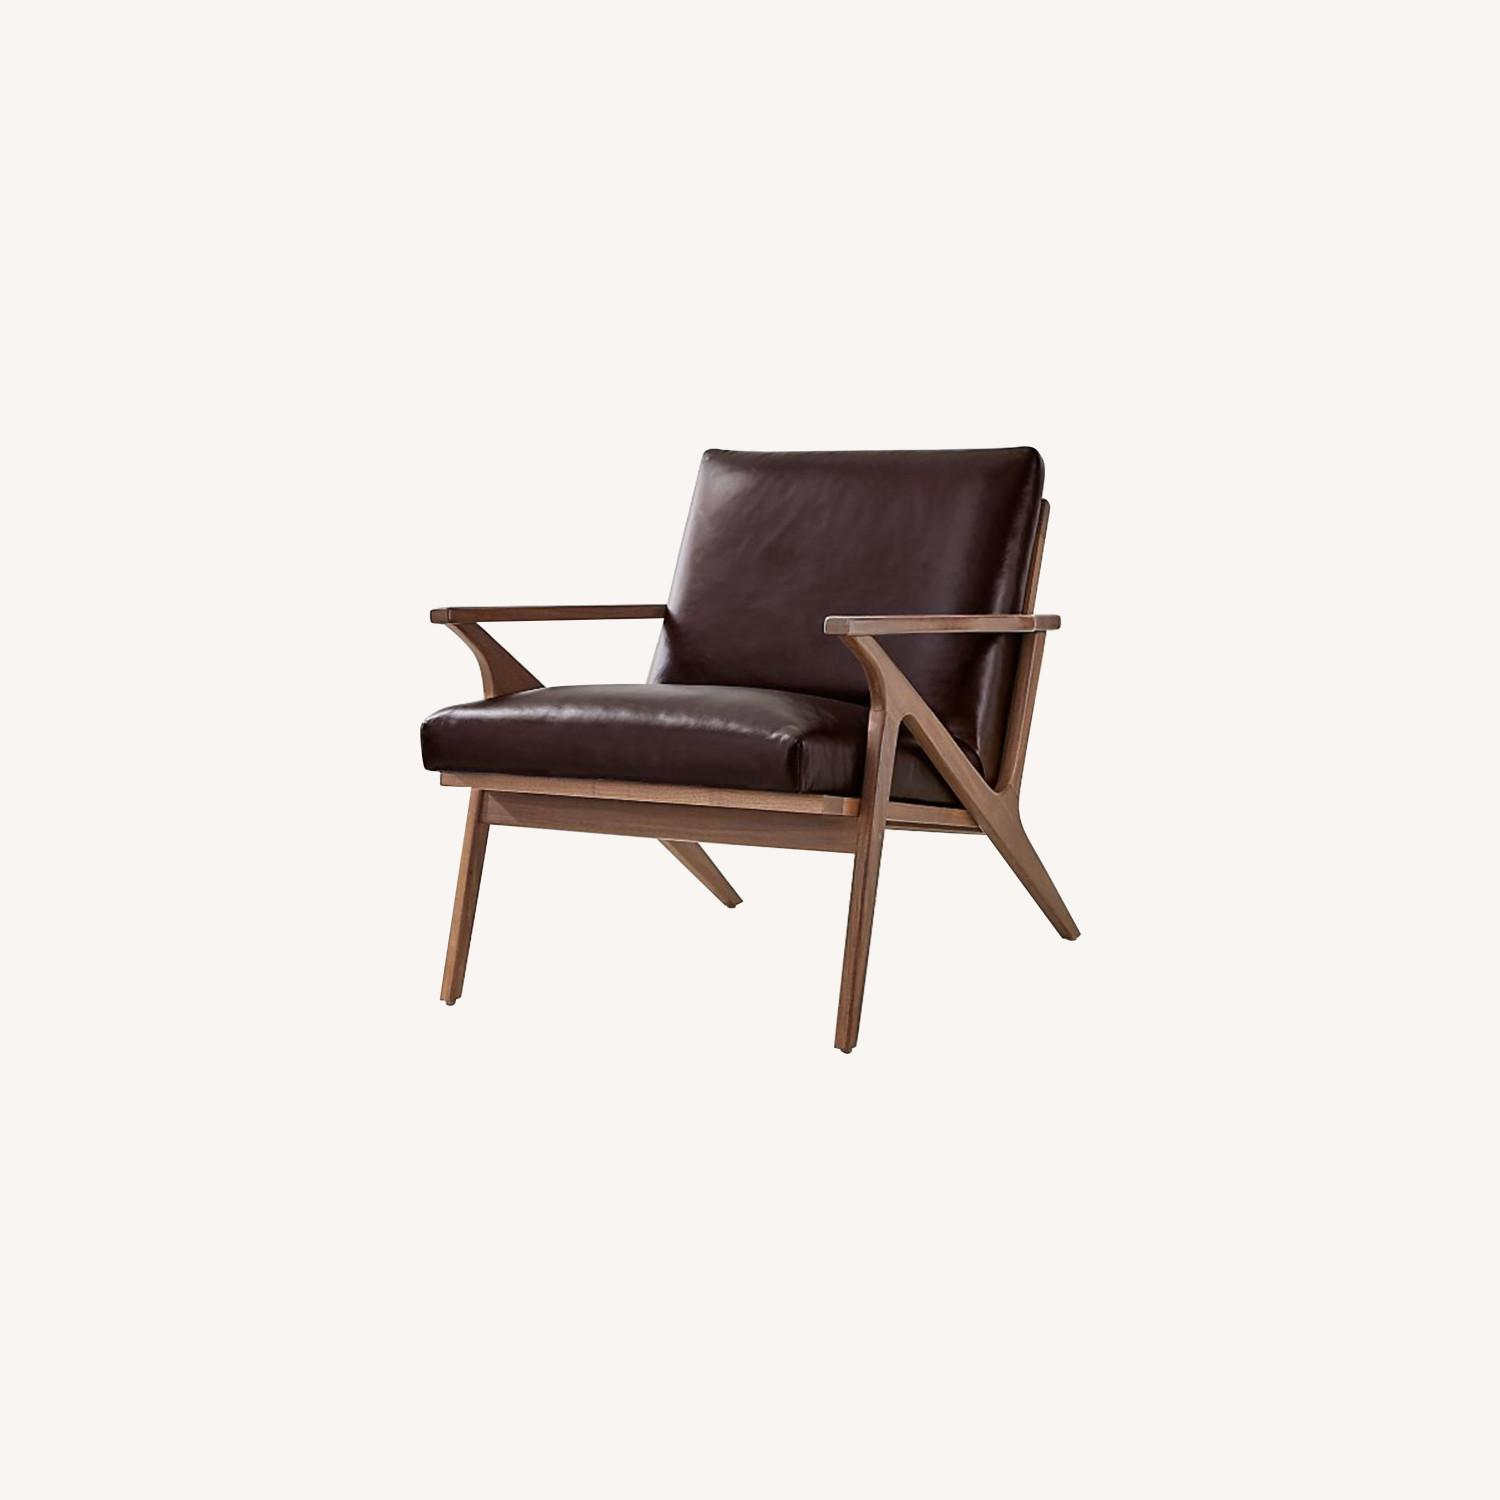 Crate & Barrel Cavett Chair and Ottoman - image-0